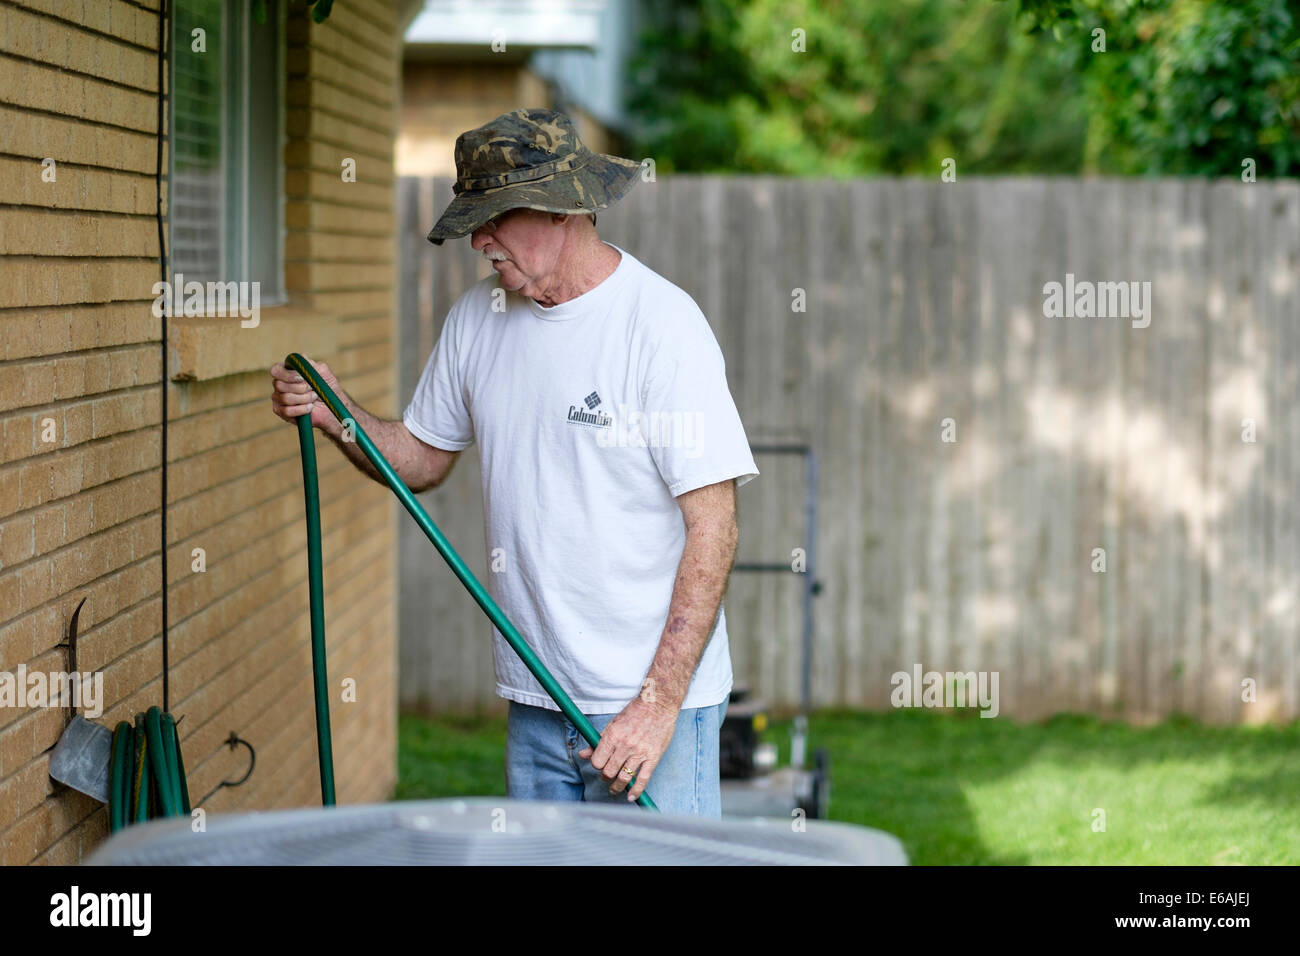 A 76 year old Caucasian man does yard chores by coiling a water hose against the house outdoors. - Stock Image